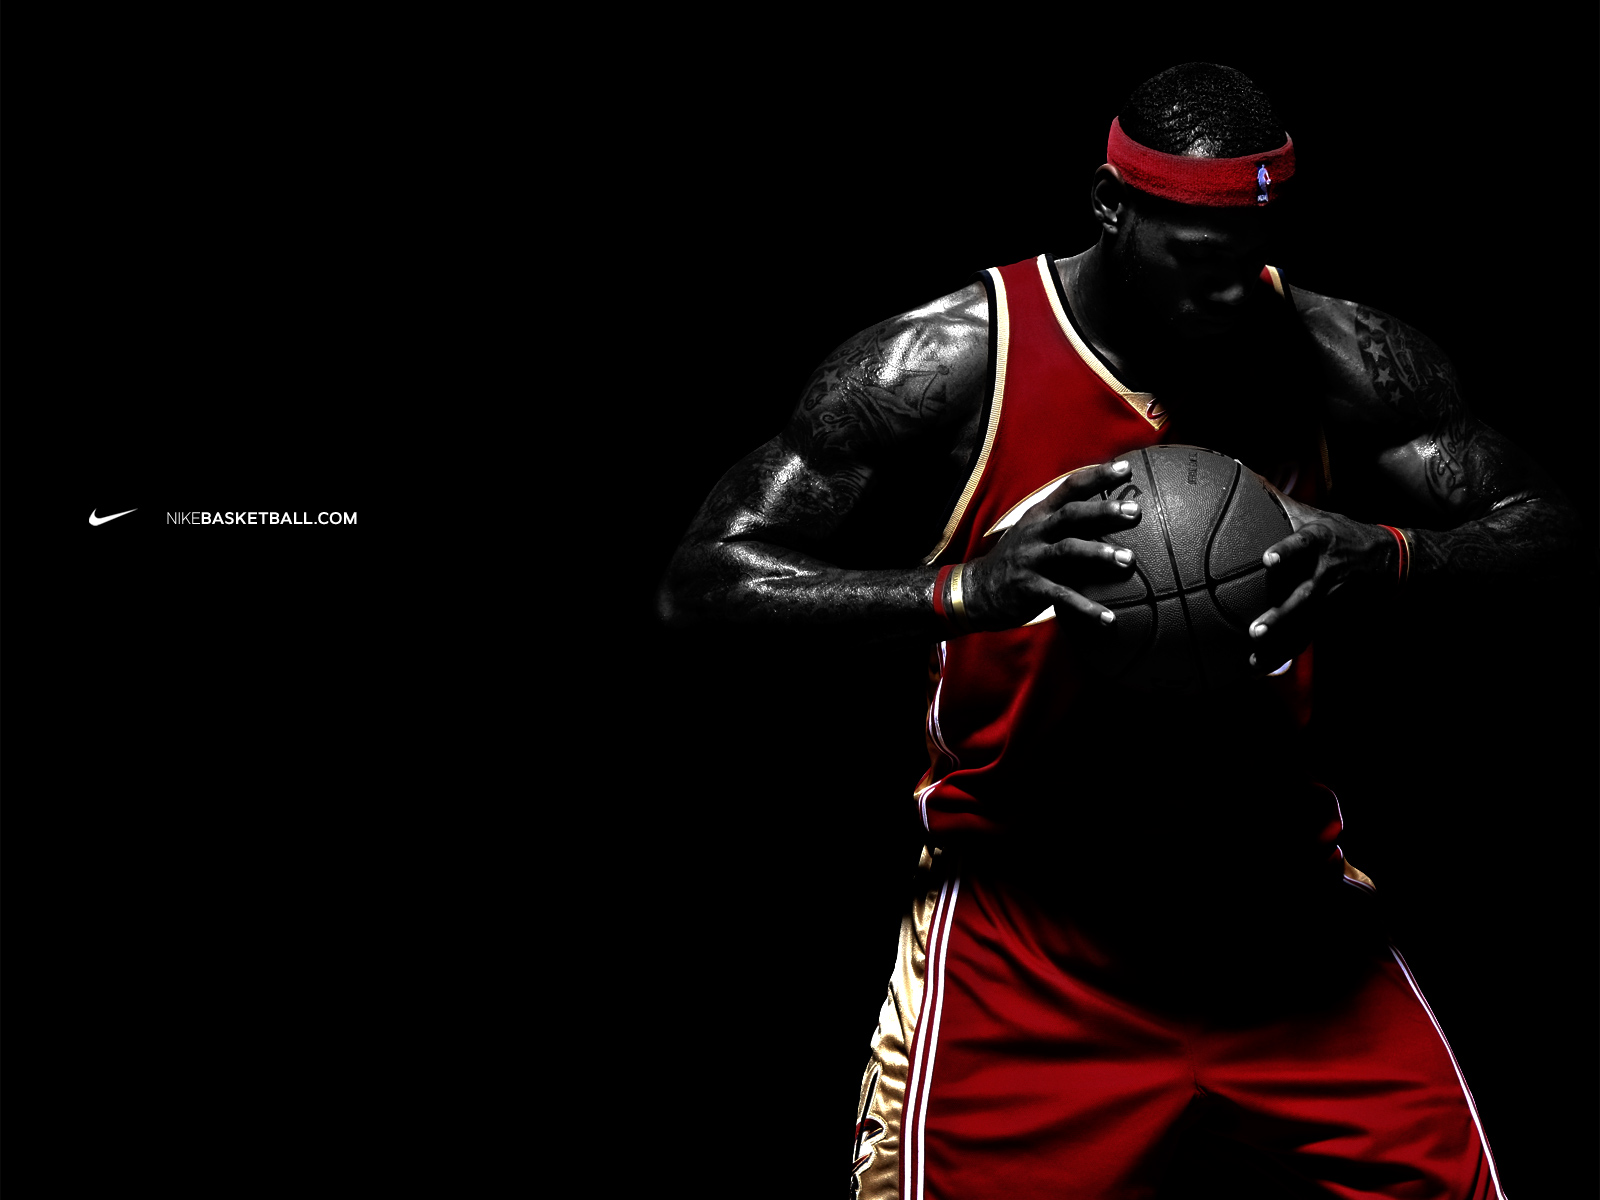 wallpapernike logo pictures nike ext dimentions background is 1600x1200